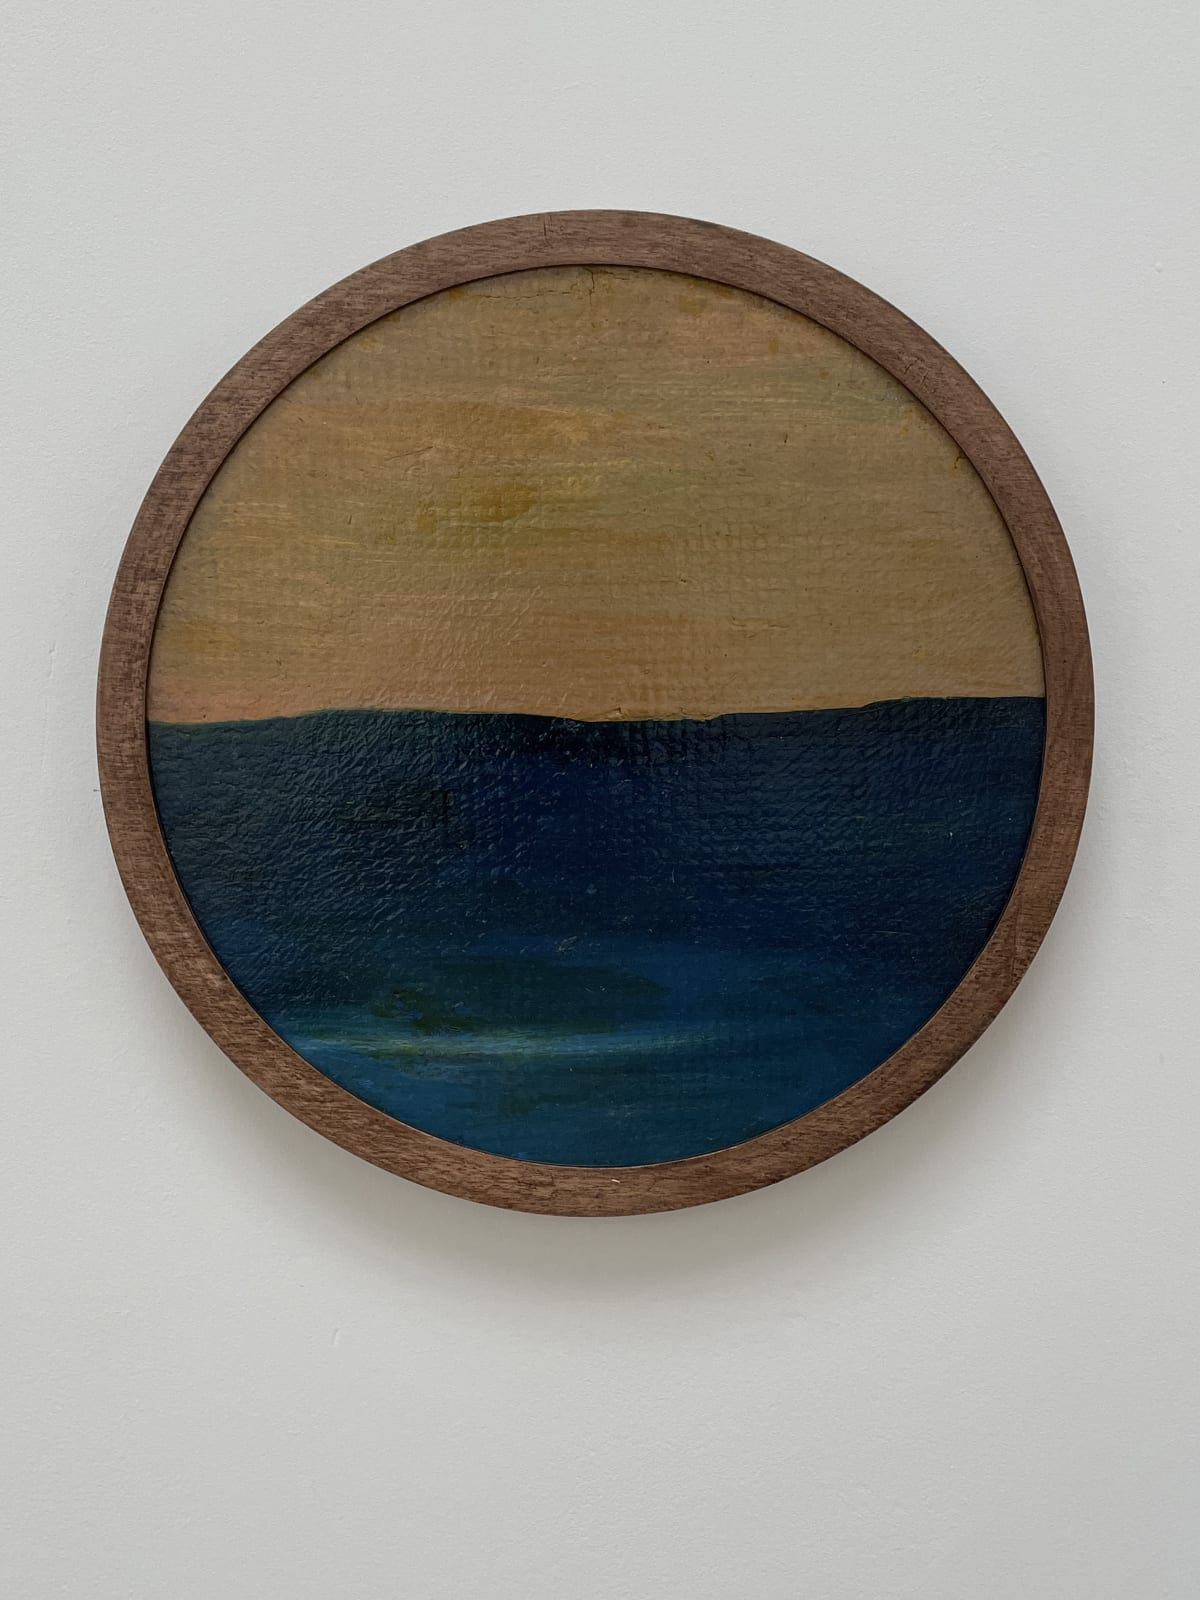 Frank Walter Untitled (Yellow sky, blue sea) Oil on pressed fibre with Masonite backing 21 cm diameter